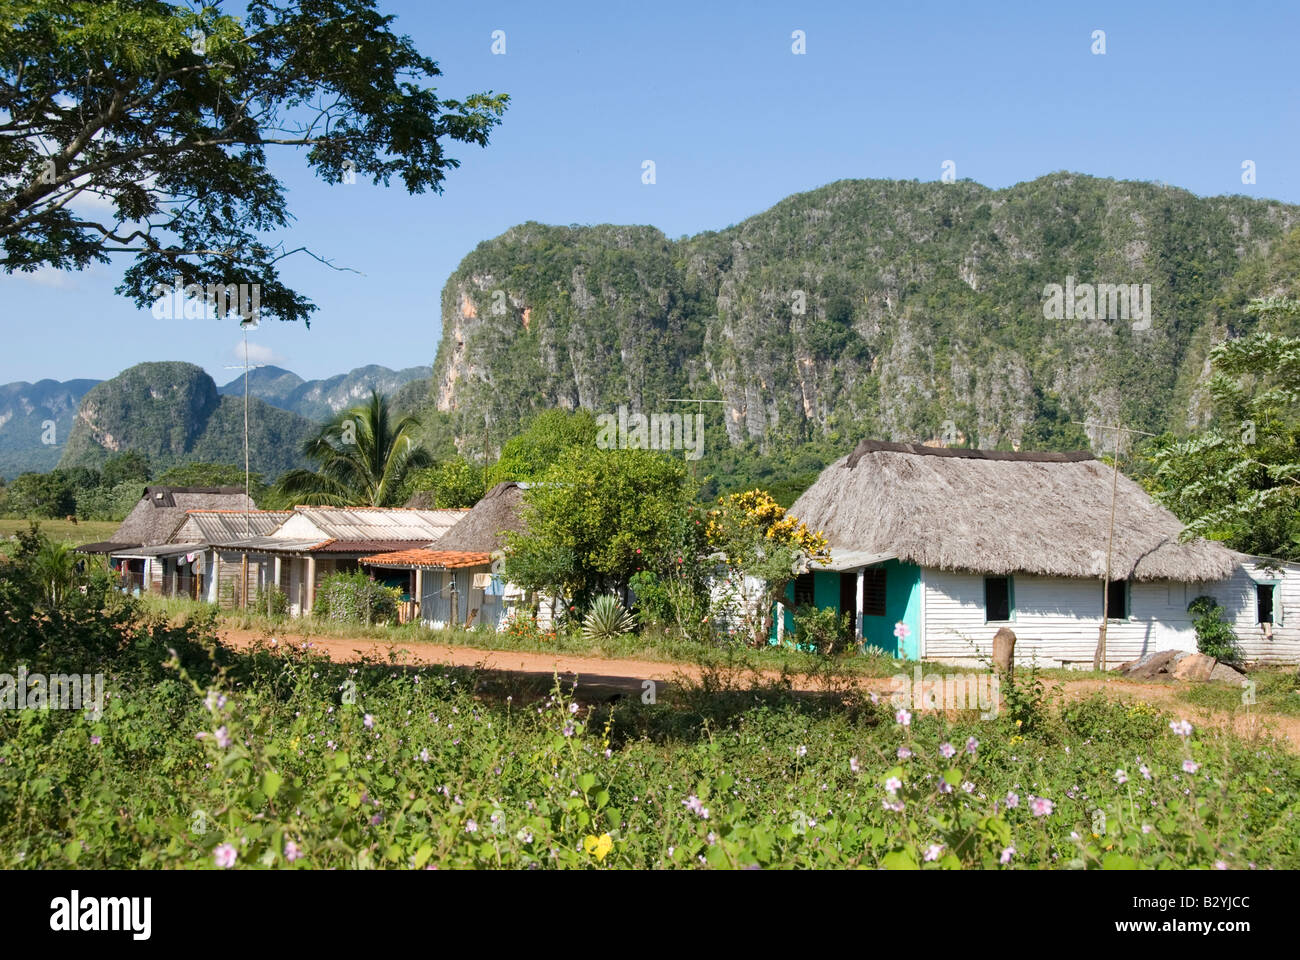 Traditional thatched wooden houses with steep limestone mogotes in the distance in the Viñales valley Cuba - Stock Image